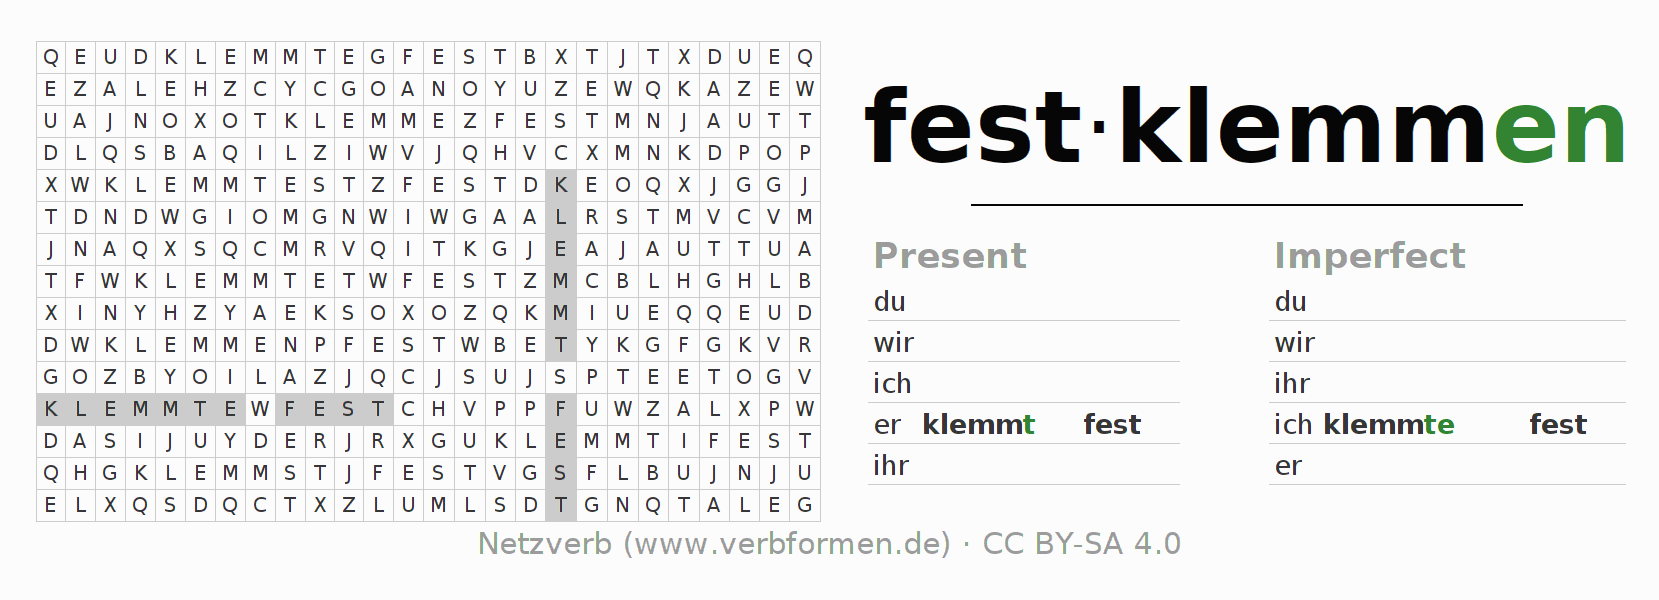 Word search puzzle for the conjugation of the verb festklemmen (hat)